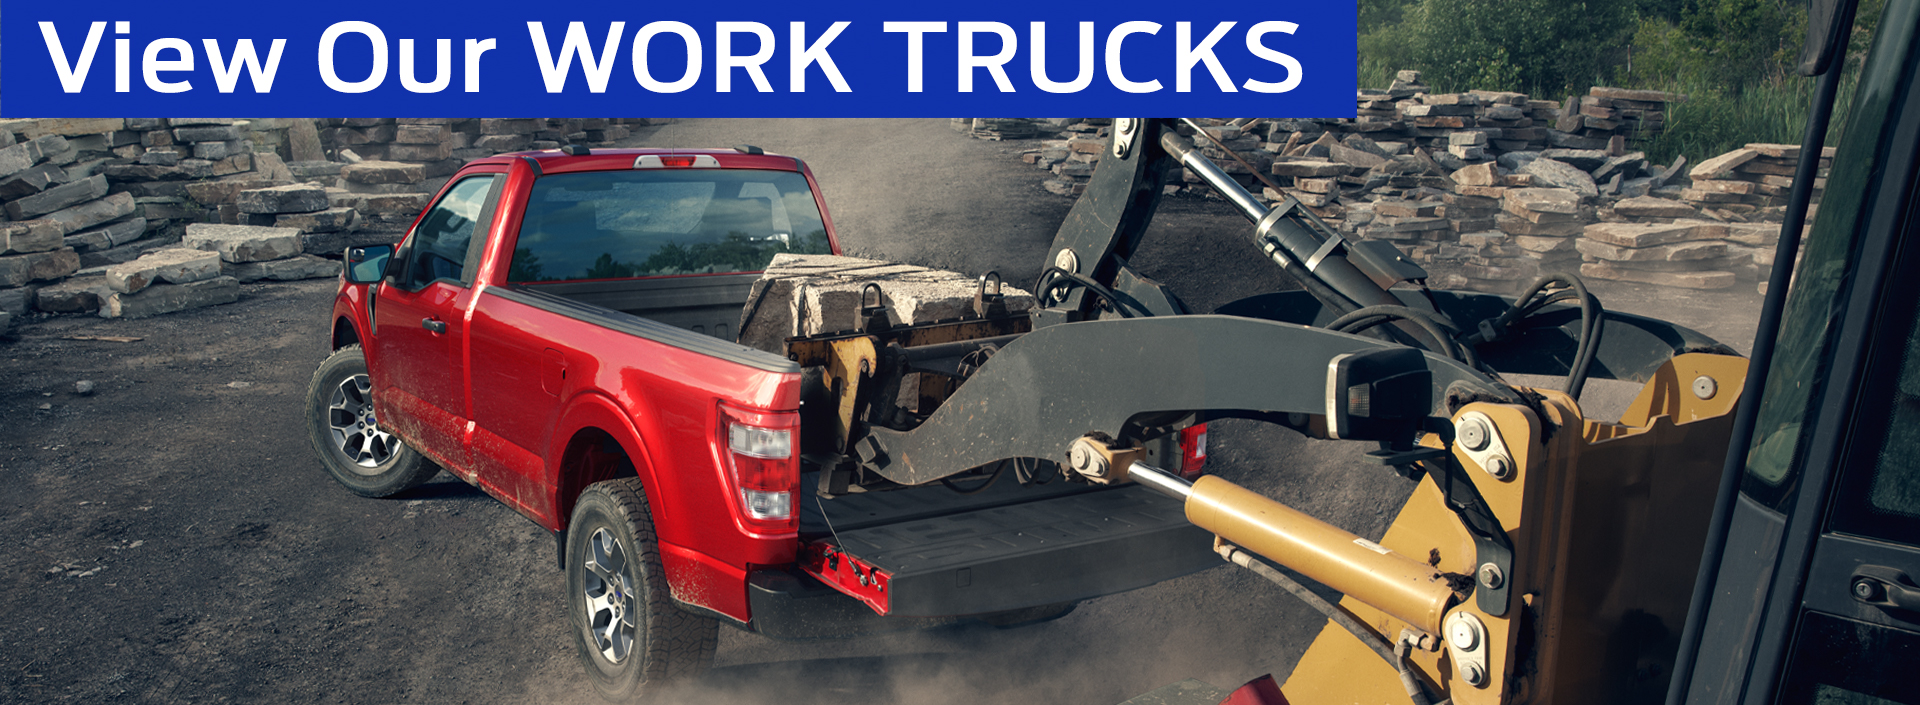 Ford Dealership in Glendora, CA offers all new work trucks